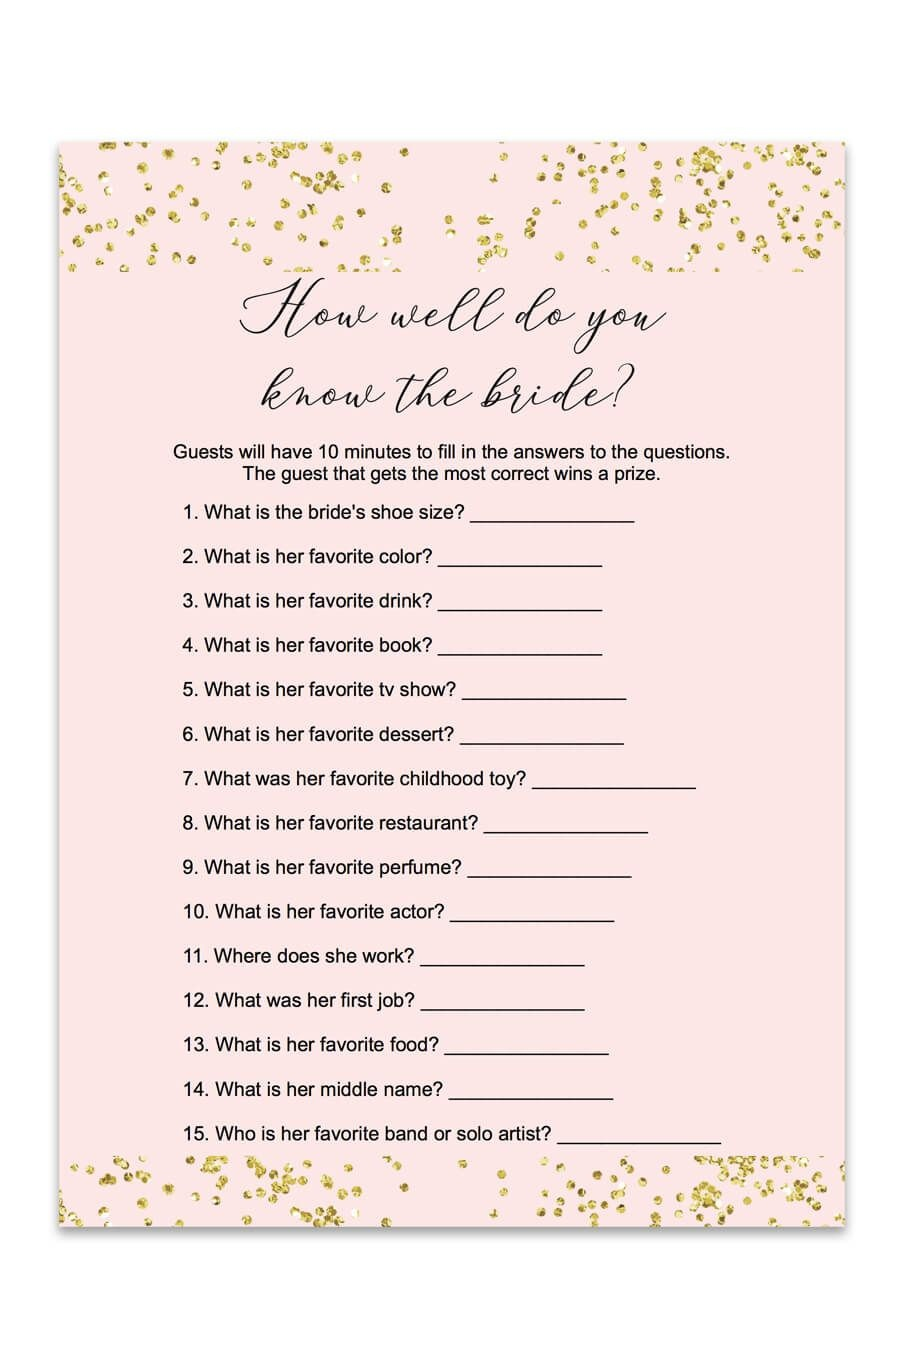 Blush And Confetti How Well Do You Know The Bride Game   Love<3 - How Well Do You Know The Bride Free Printable